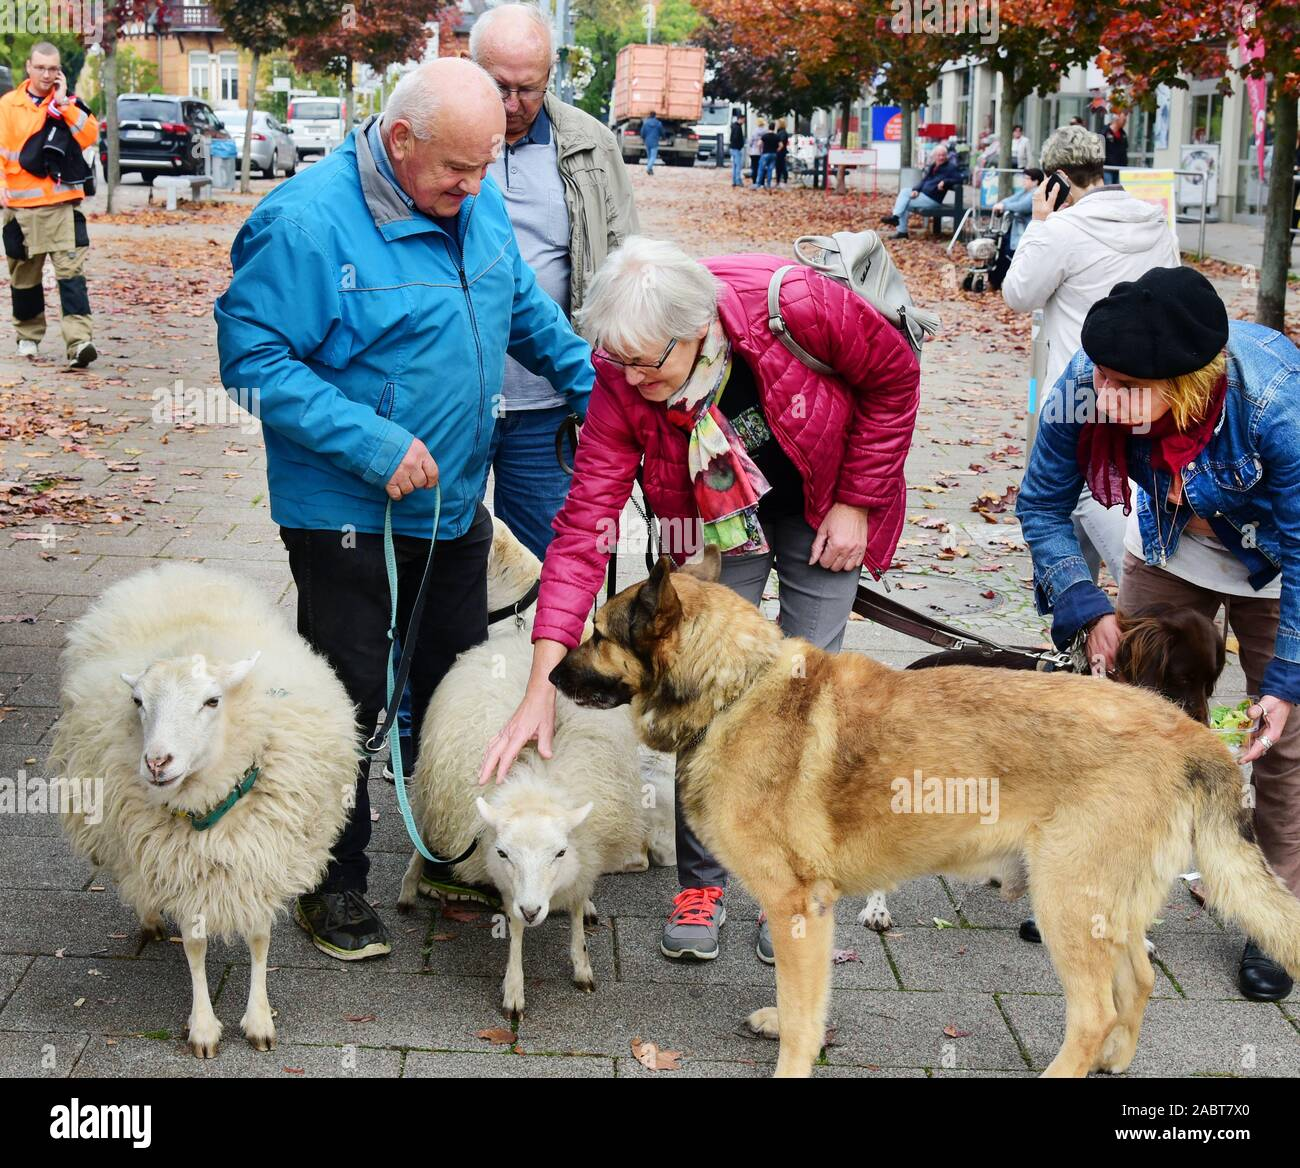 21 October 2019, Saxony, Schkeuditz: Werner Dreßler is greeted with his animals, dogs and sheep in the city centre. The 79-year-old master toolmaker takes the animals for a walk in the city every day and is an eye-catcher for locals and visitors alike. Photo: Waltraud Grubitzsch/dpa-Zentralbild/ZB Stock Photo